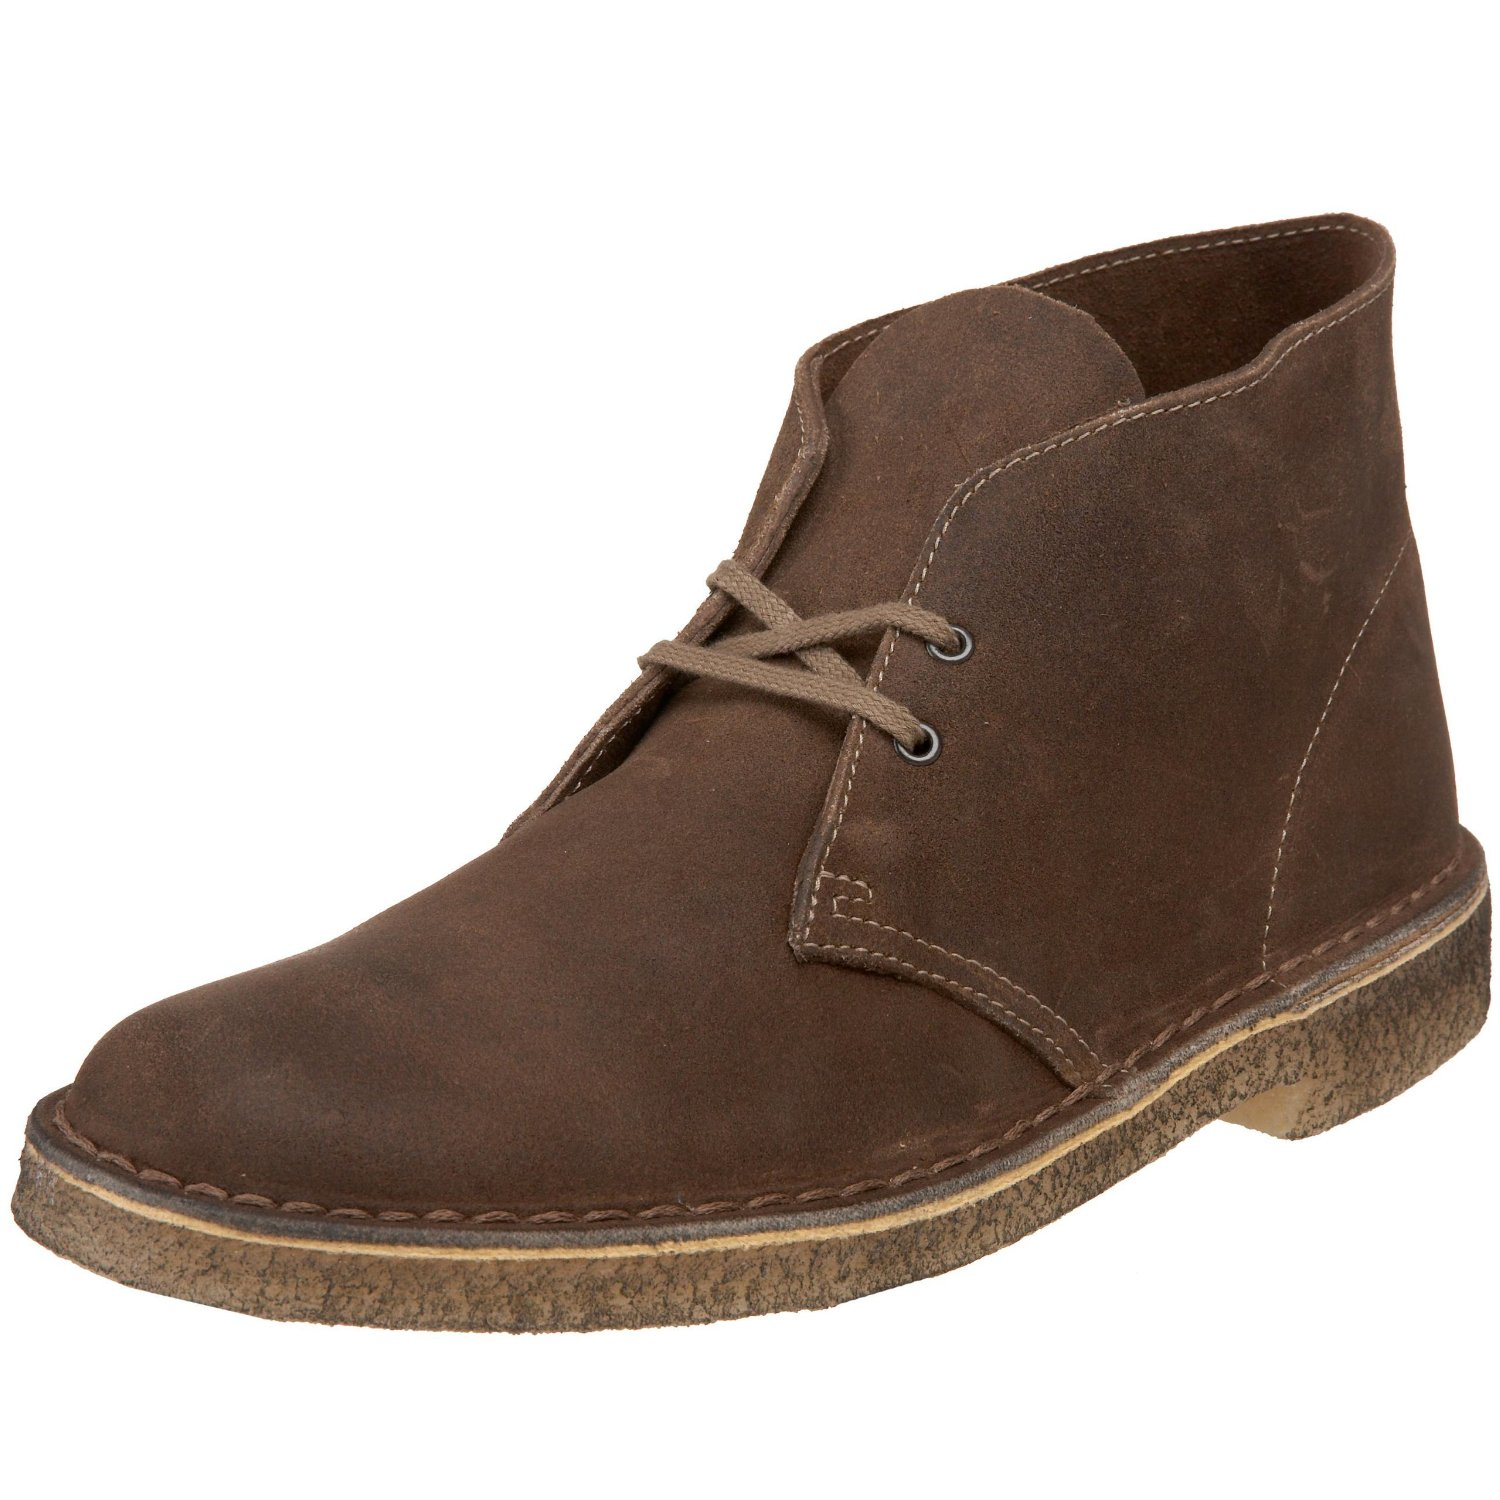 clarks desert boot in brown for men taupe suede lyst. Black Bedroom Furniture Sets. Home Design Ideas